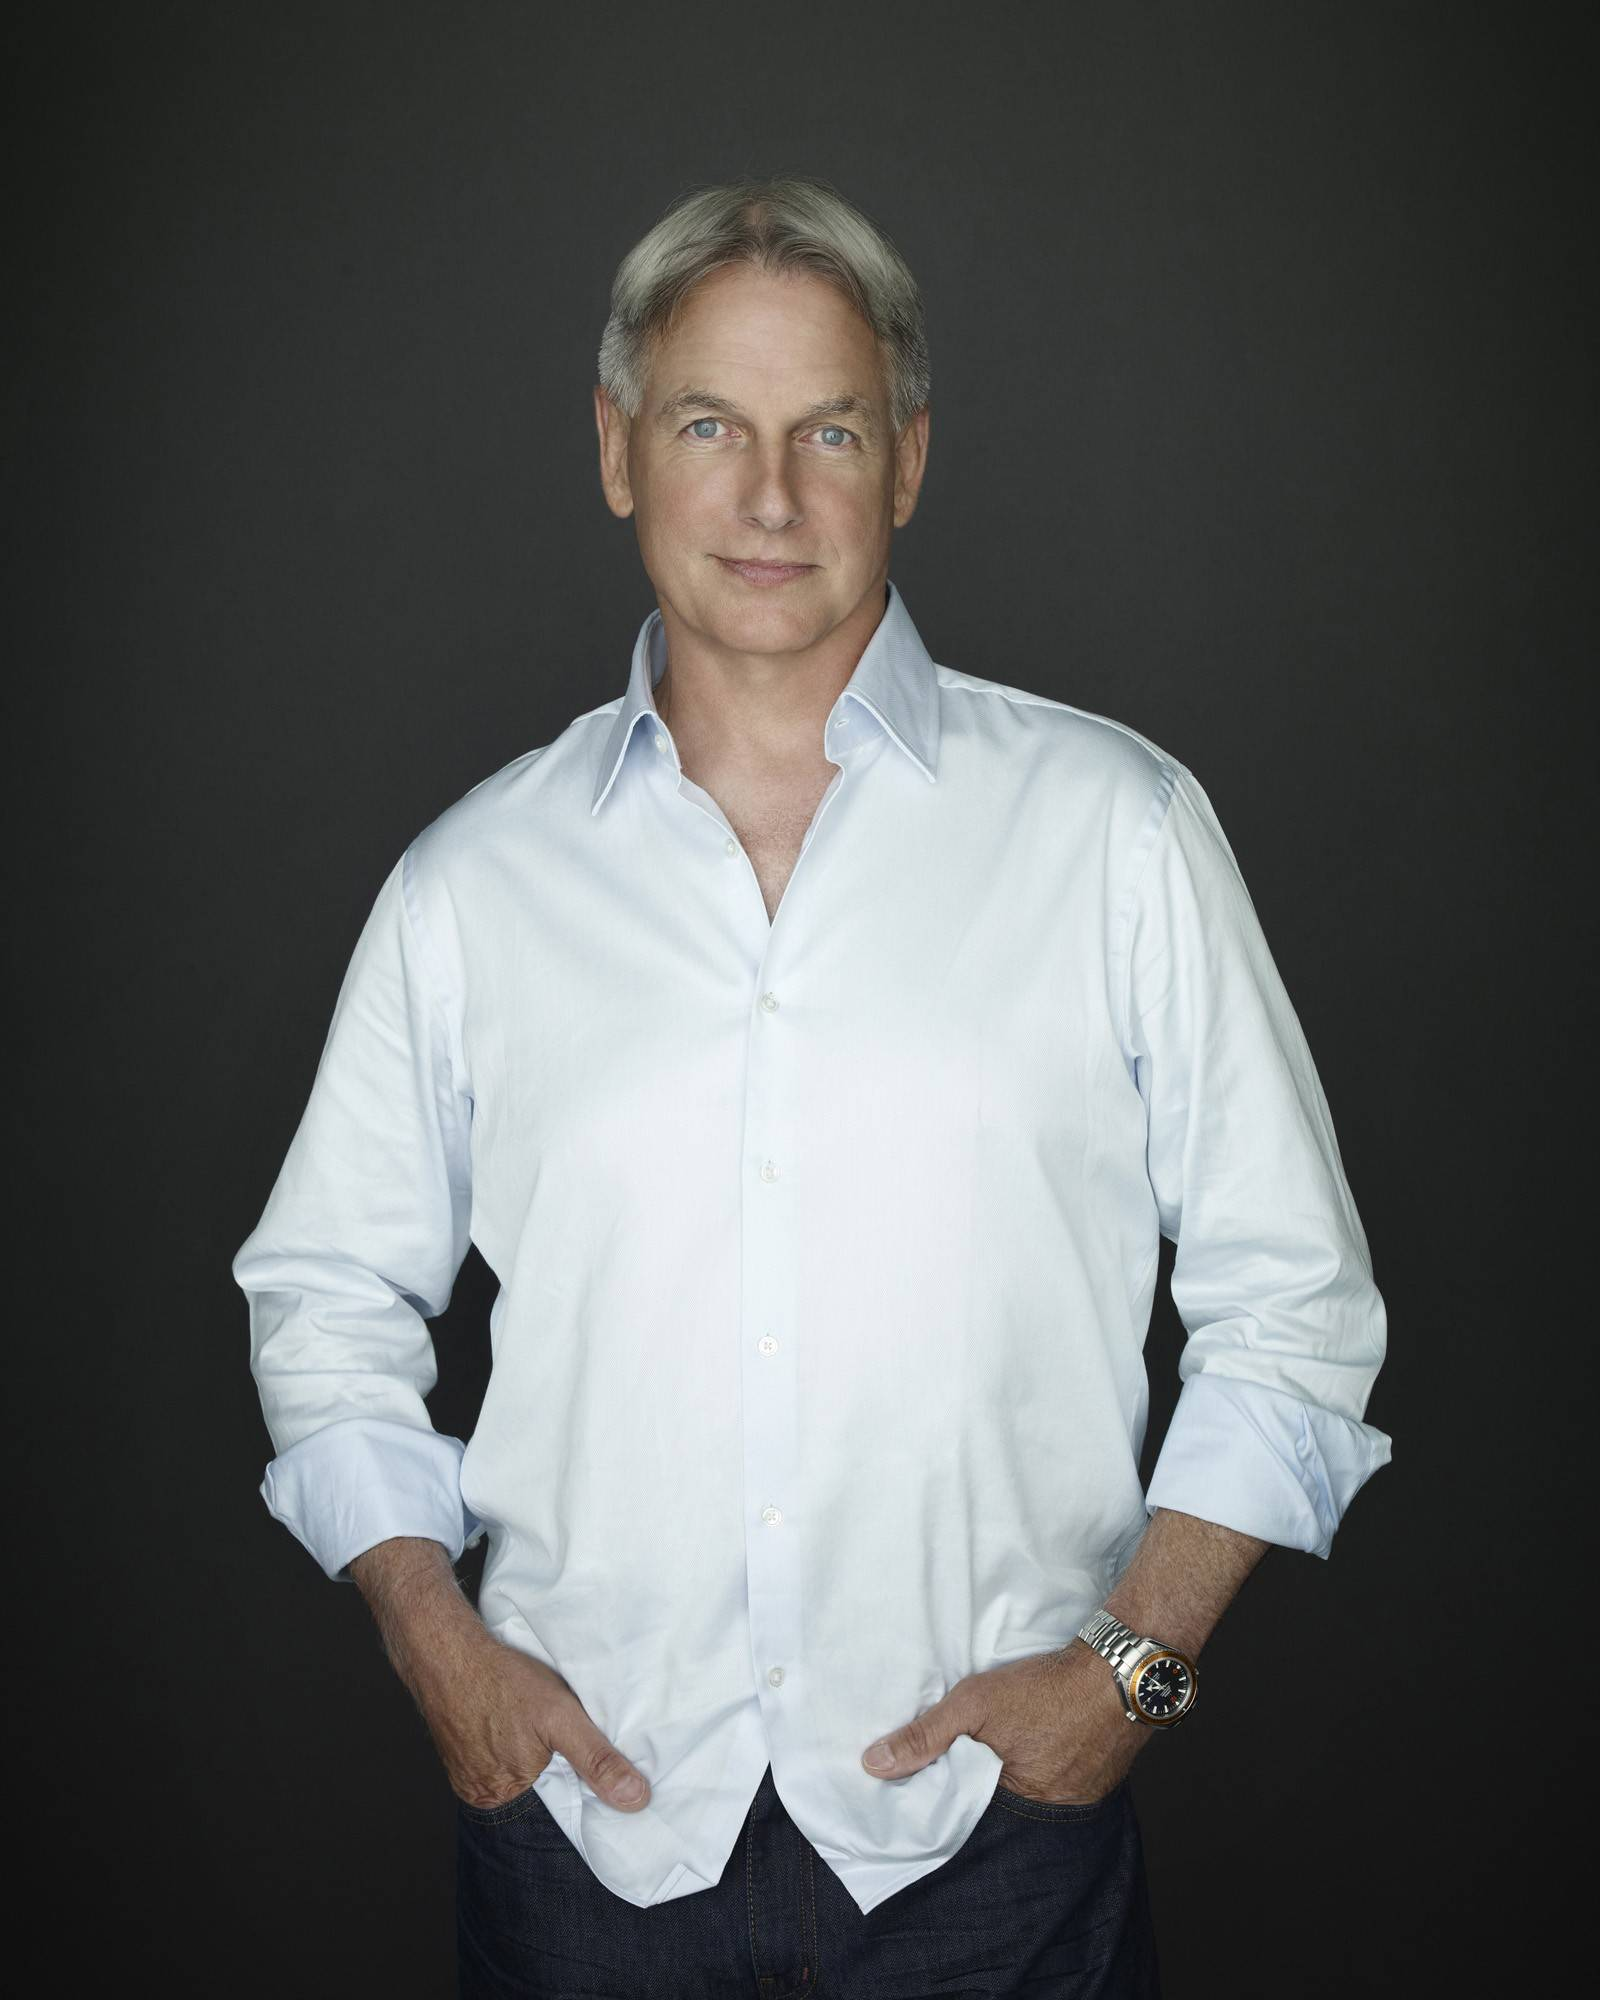 """NCIS"" star Mark Harmon is one of the celebrities participating in ""Stand Up to Cancer,"" airing on ABC, CBS, Fox and NBC at 7 p.m. Friday, Sept. 5."